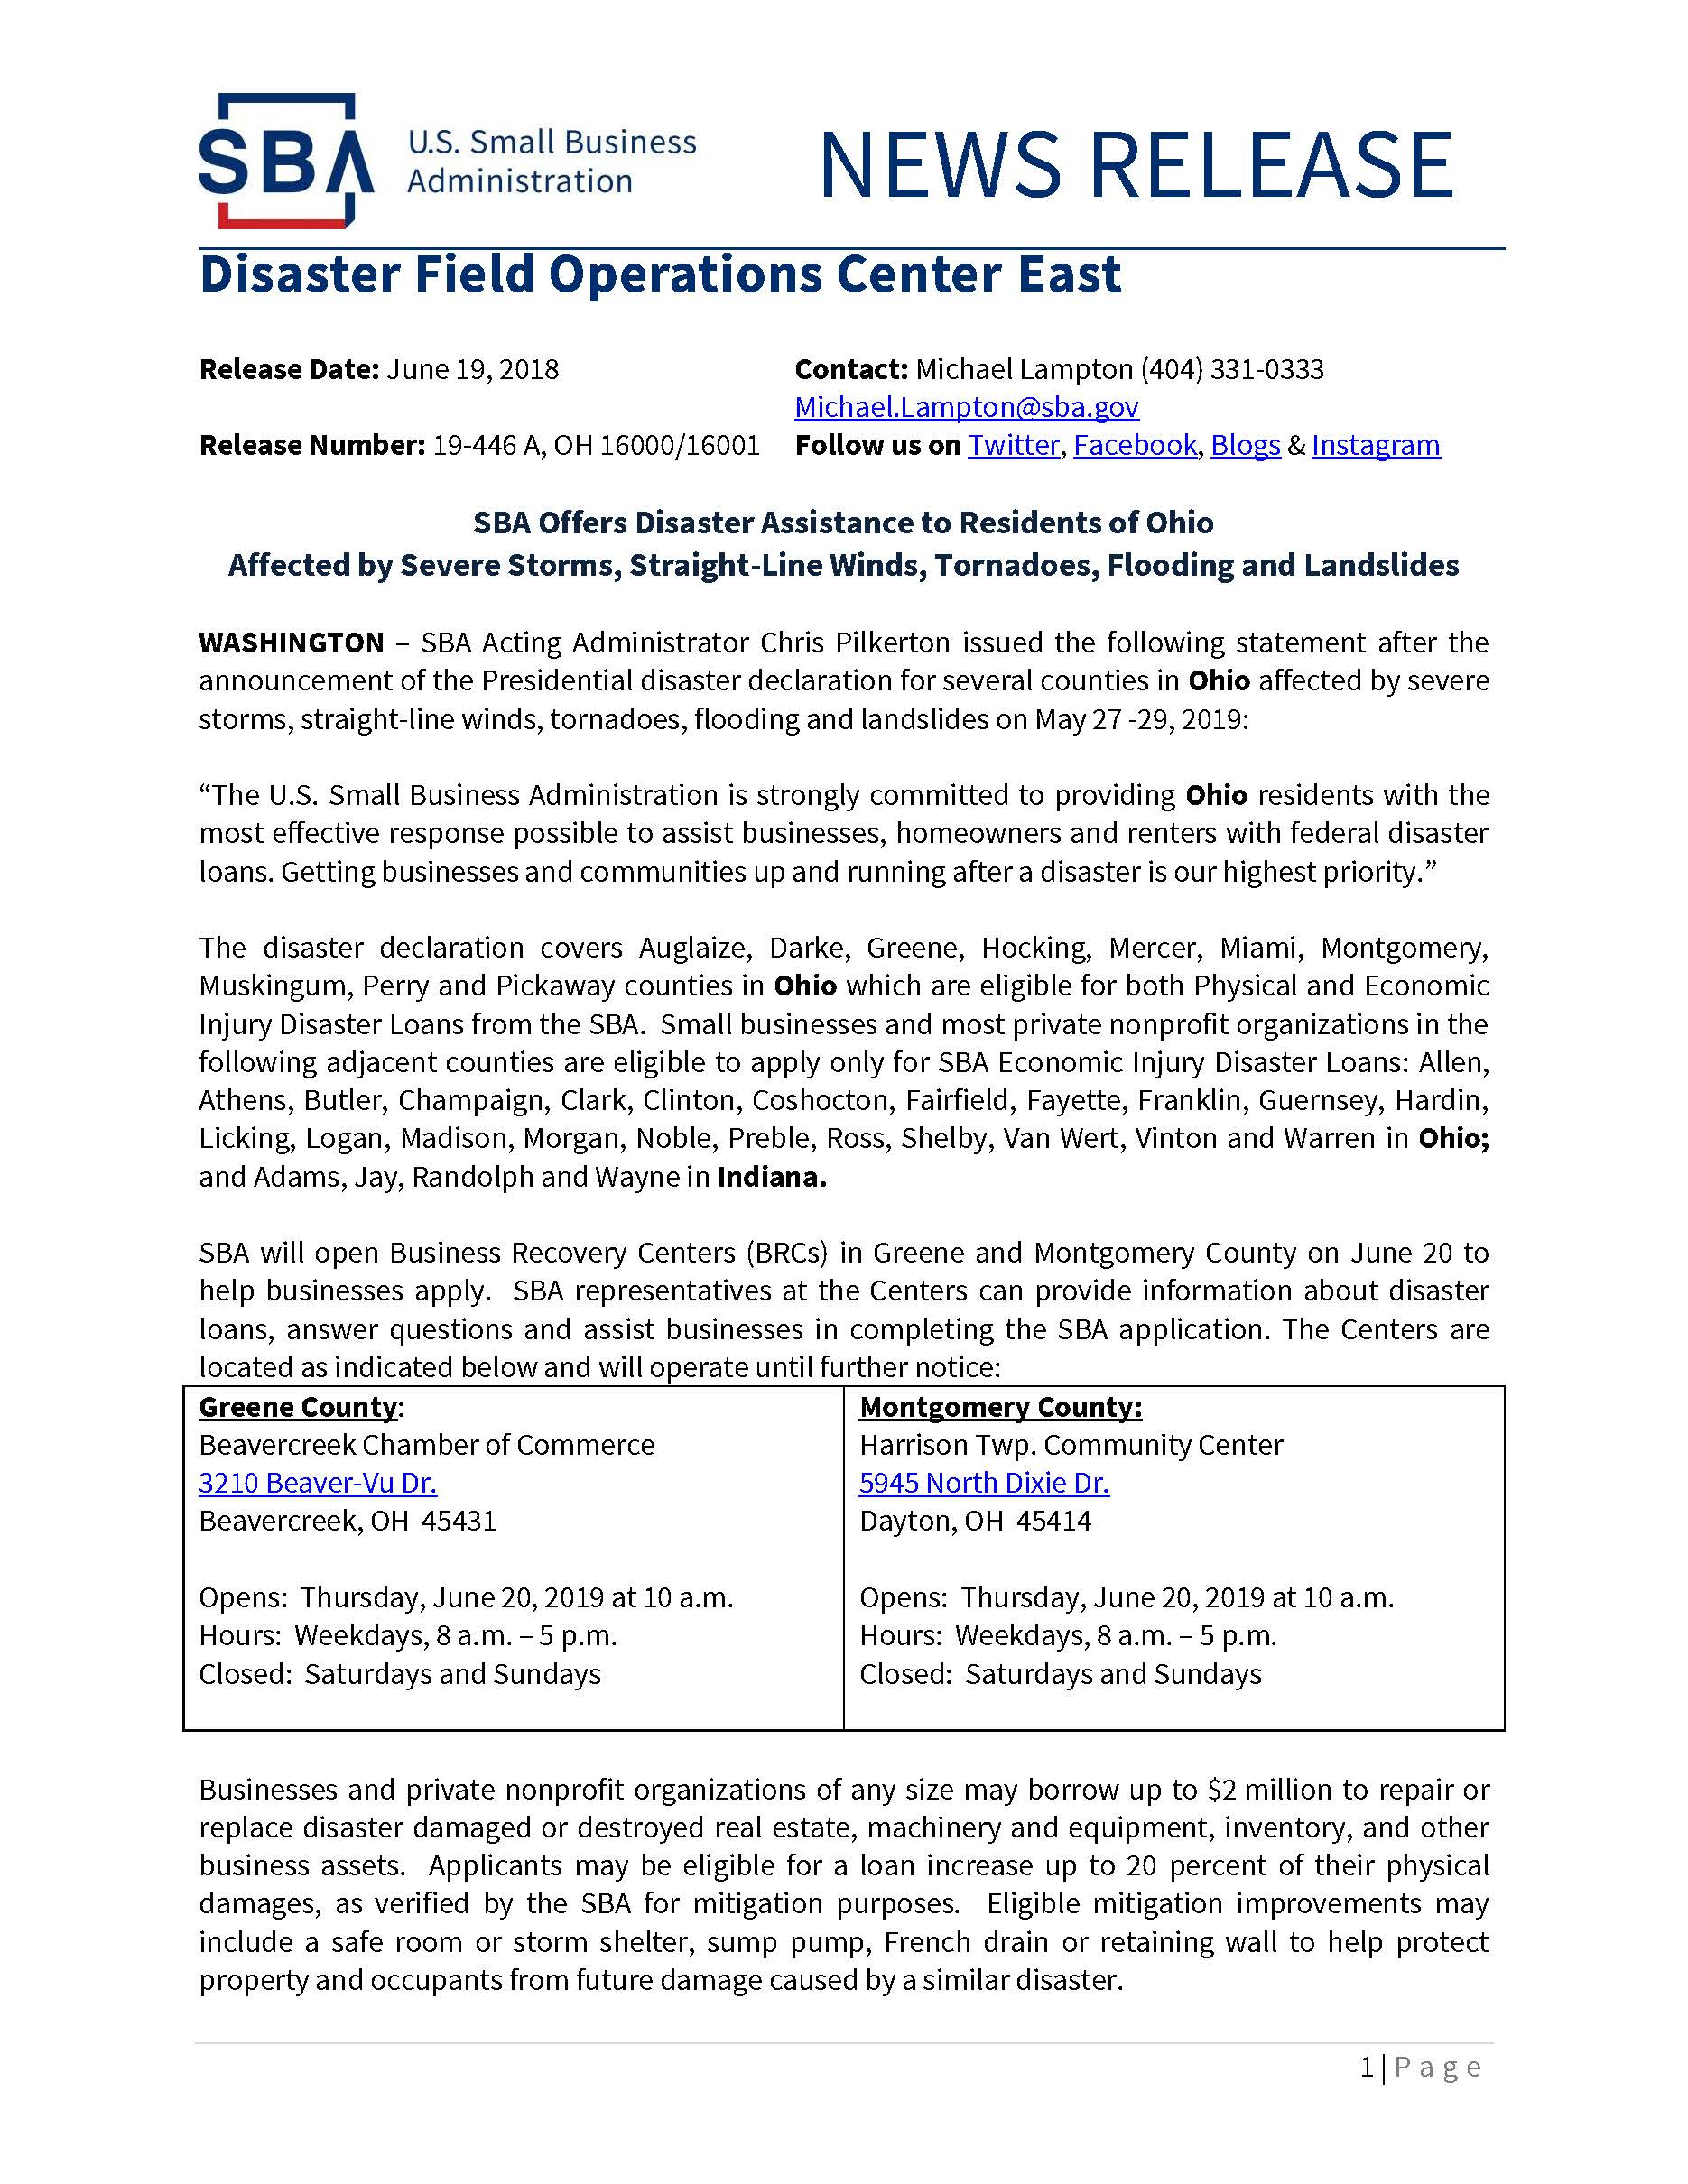 SBA Offers Disaster Assistance to OH Businesses and Residents Page 1